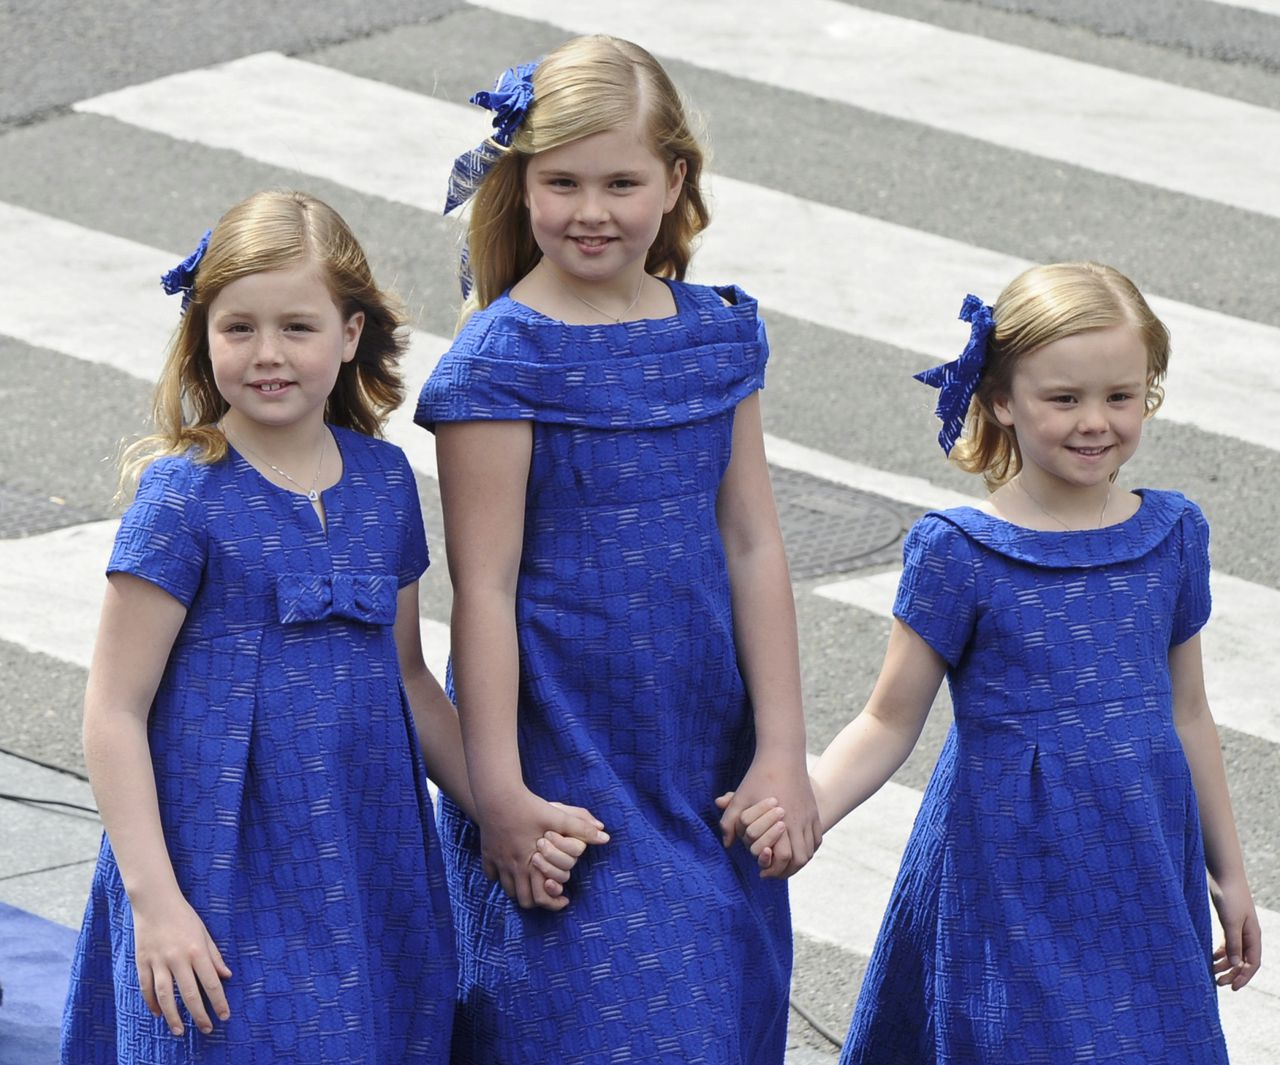 Crown Princess Catharina-Amalia (C) Princess Alexia (L) and Princess Ariane arrive to attend the inauguration at Nieuwe Kerk church in Amsterdam April 30, 2013. The Netherlands is celebrating Queen's Day on Tuesday, which will also mark the abdication of Queen Beatrix and the investiture of her eldest son Willem-Alexander. REUTERS/Paul Vreeker (NETHERLANDS - Tags: POLITICS ENTERTAINMENT ROYALS)